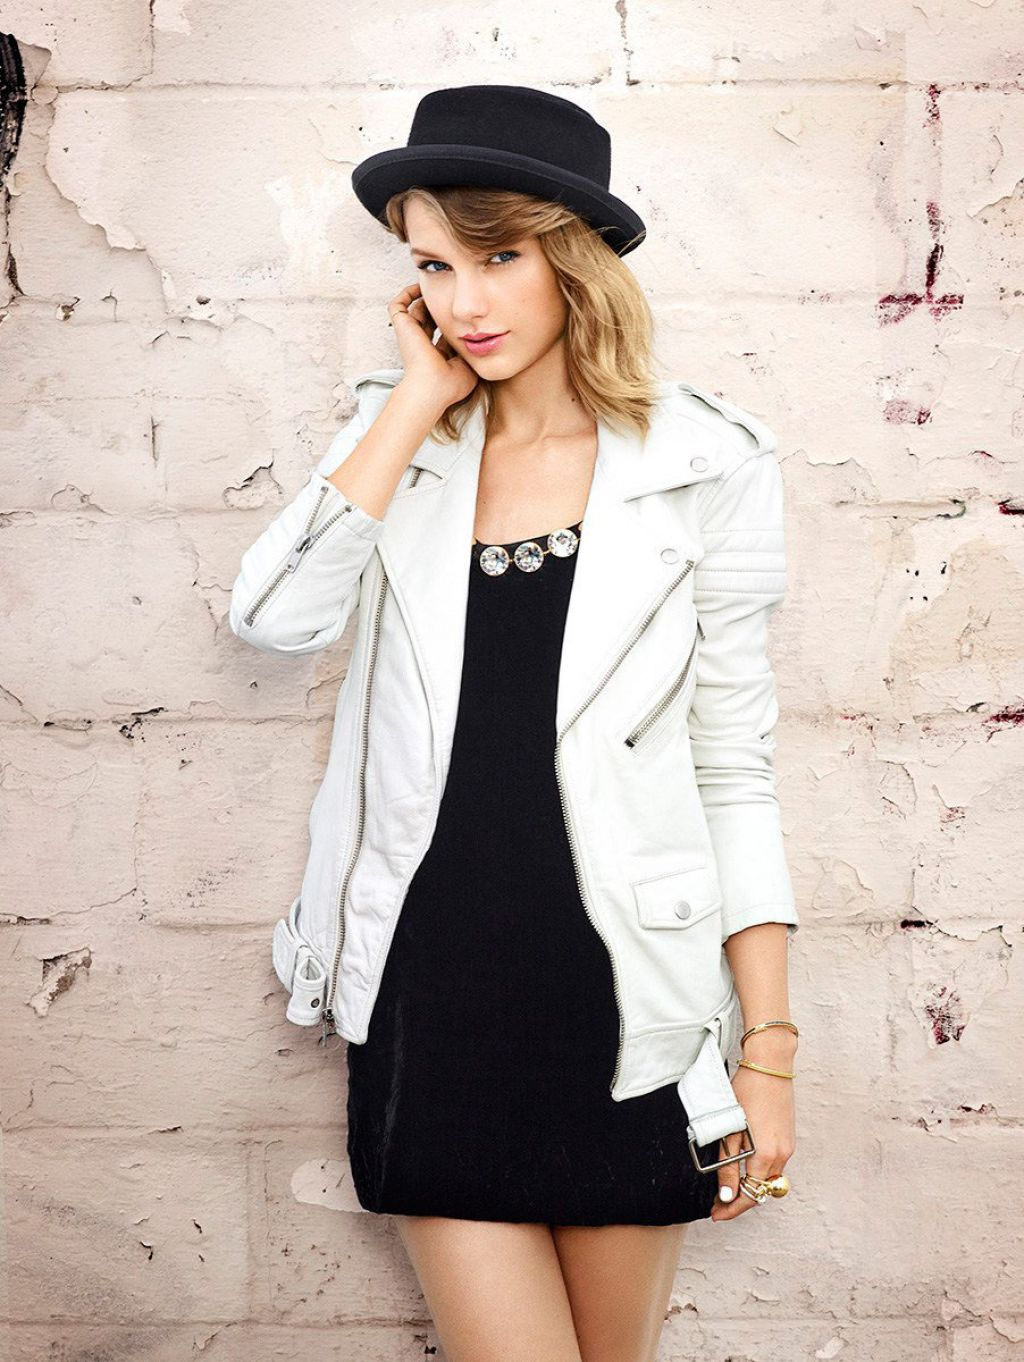 taylor-swift-lucky-3